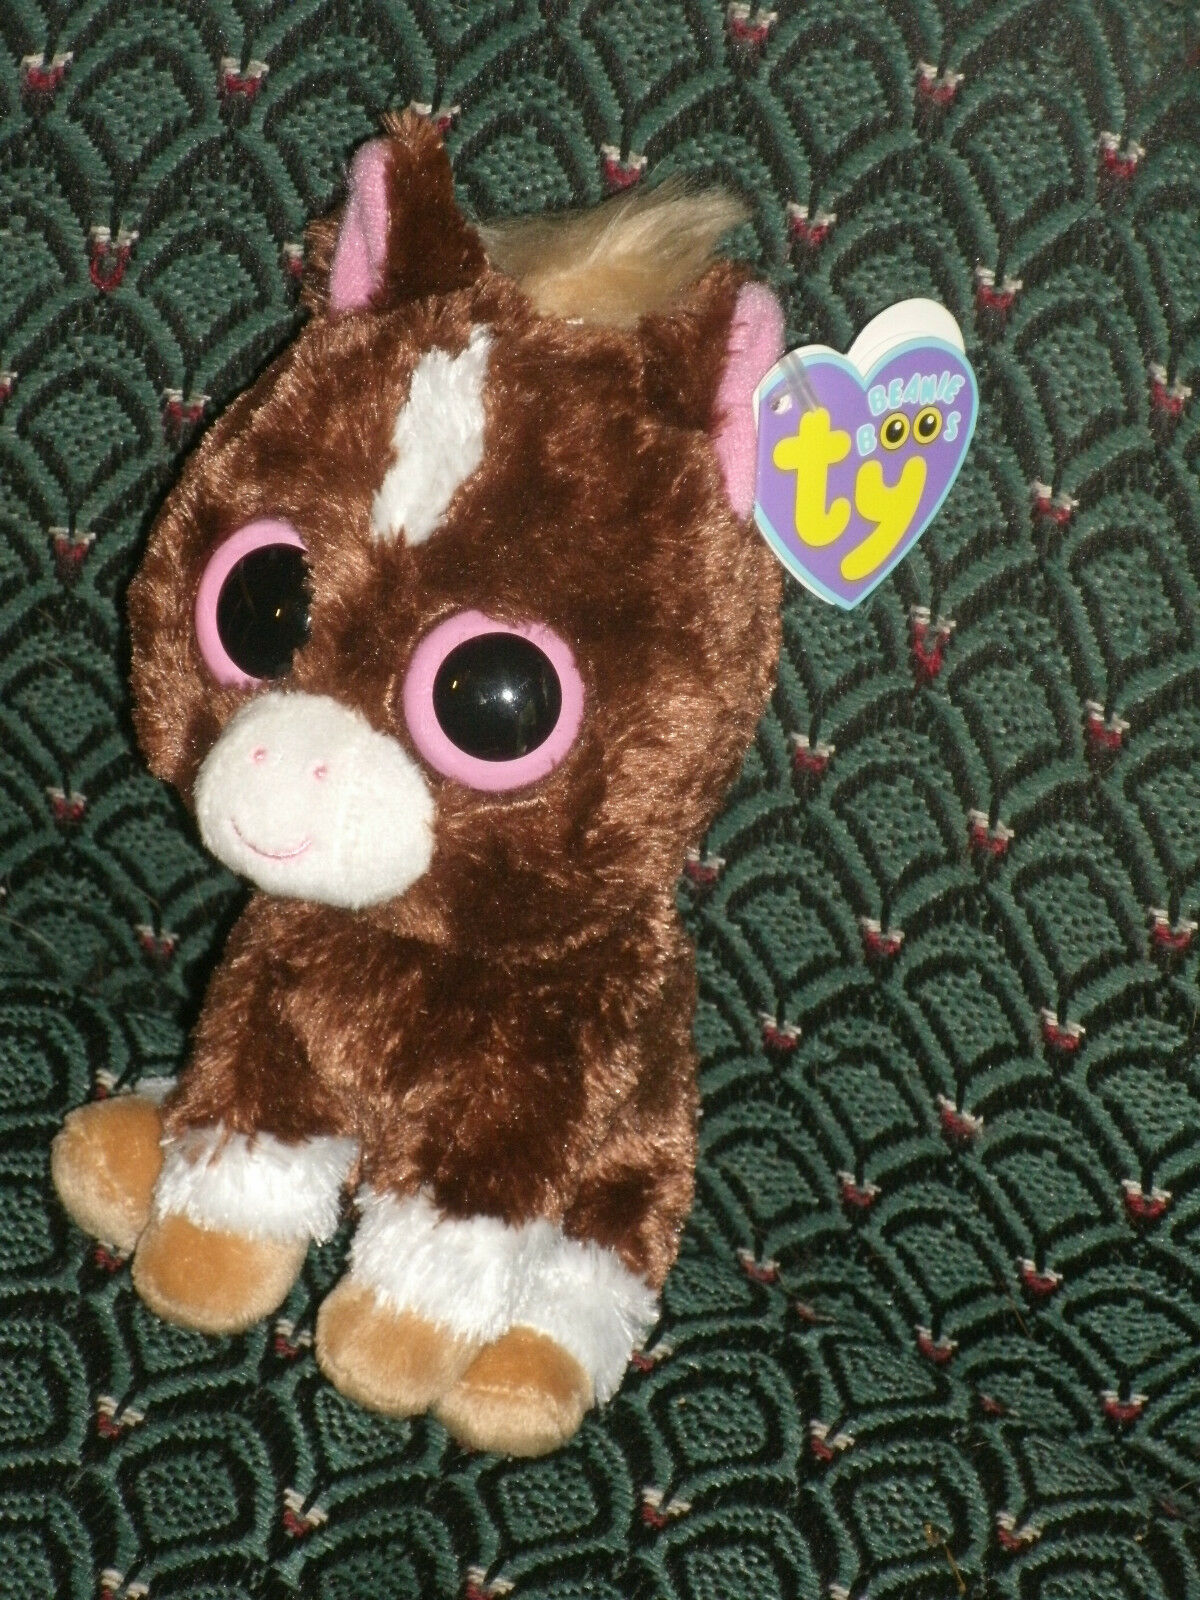 19d47f79109 ... UPC 008421360765 product image for Nt Ty Beanie Boos Dakota The 6 ...